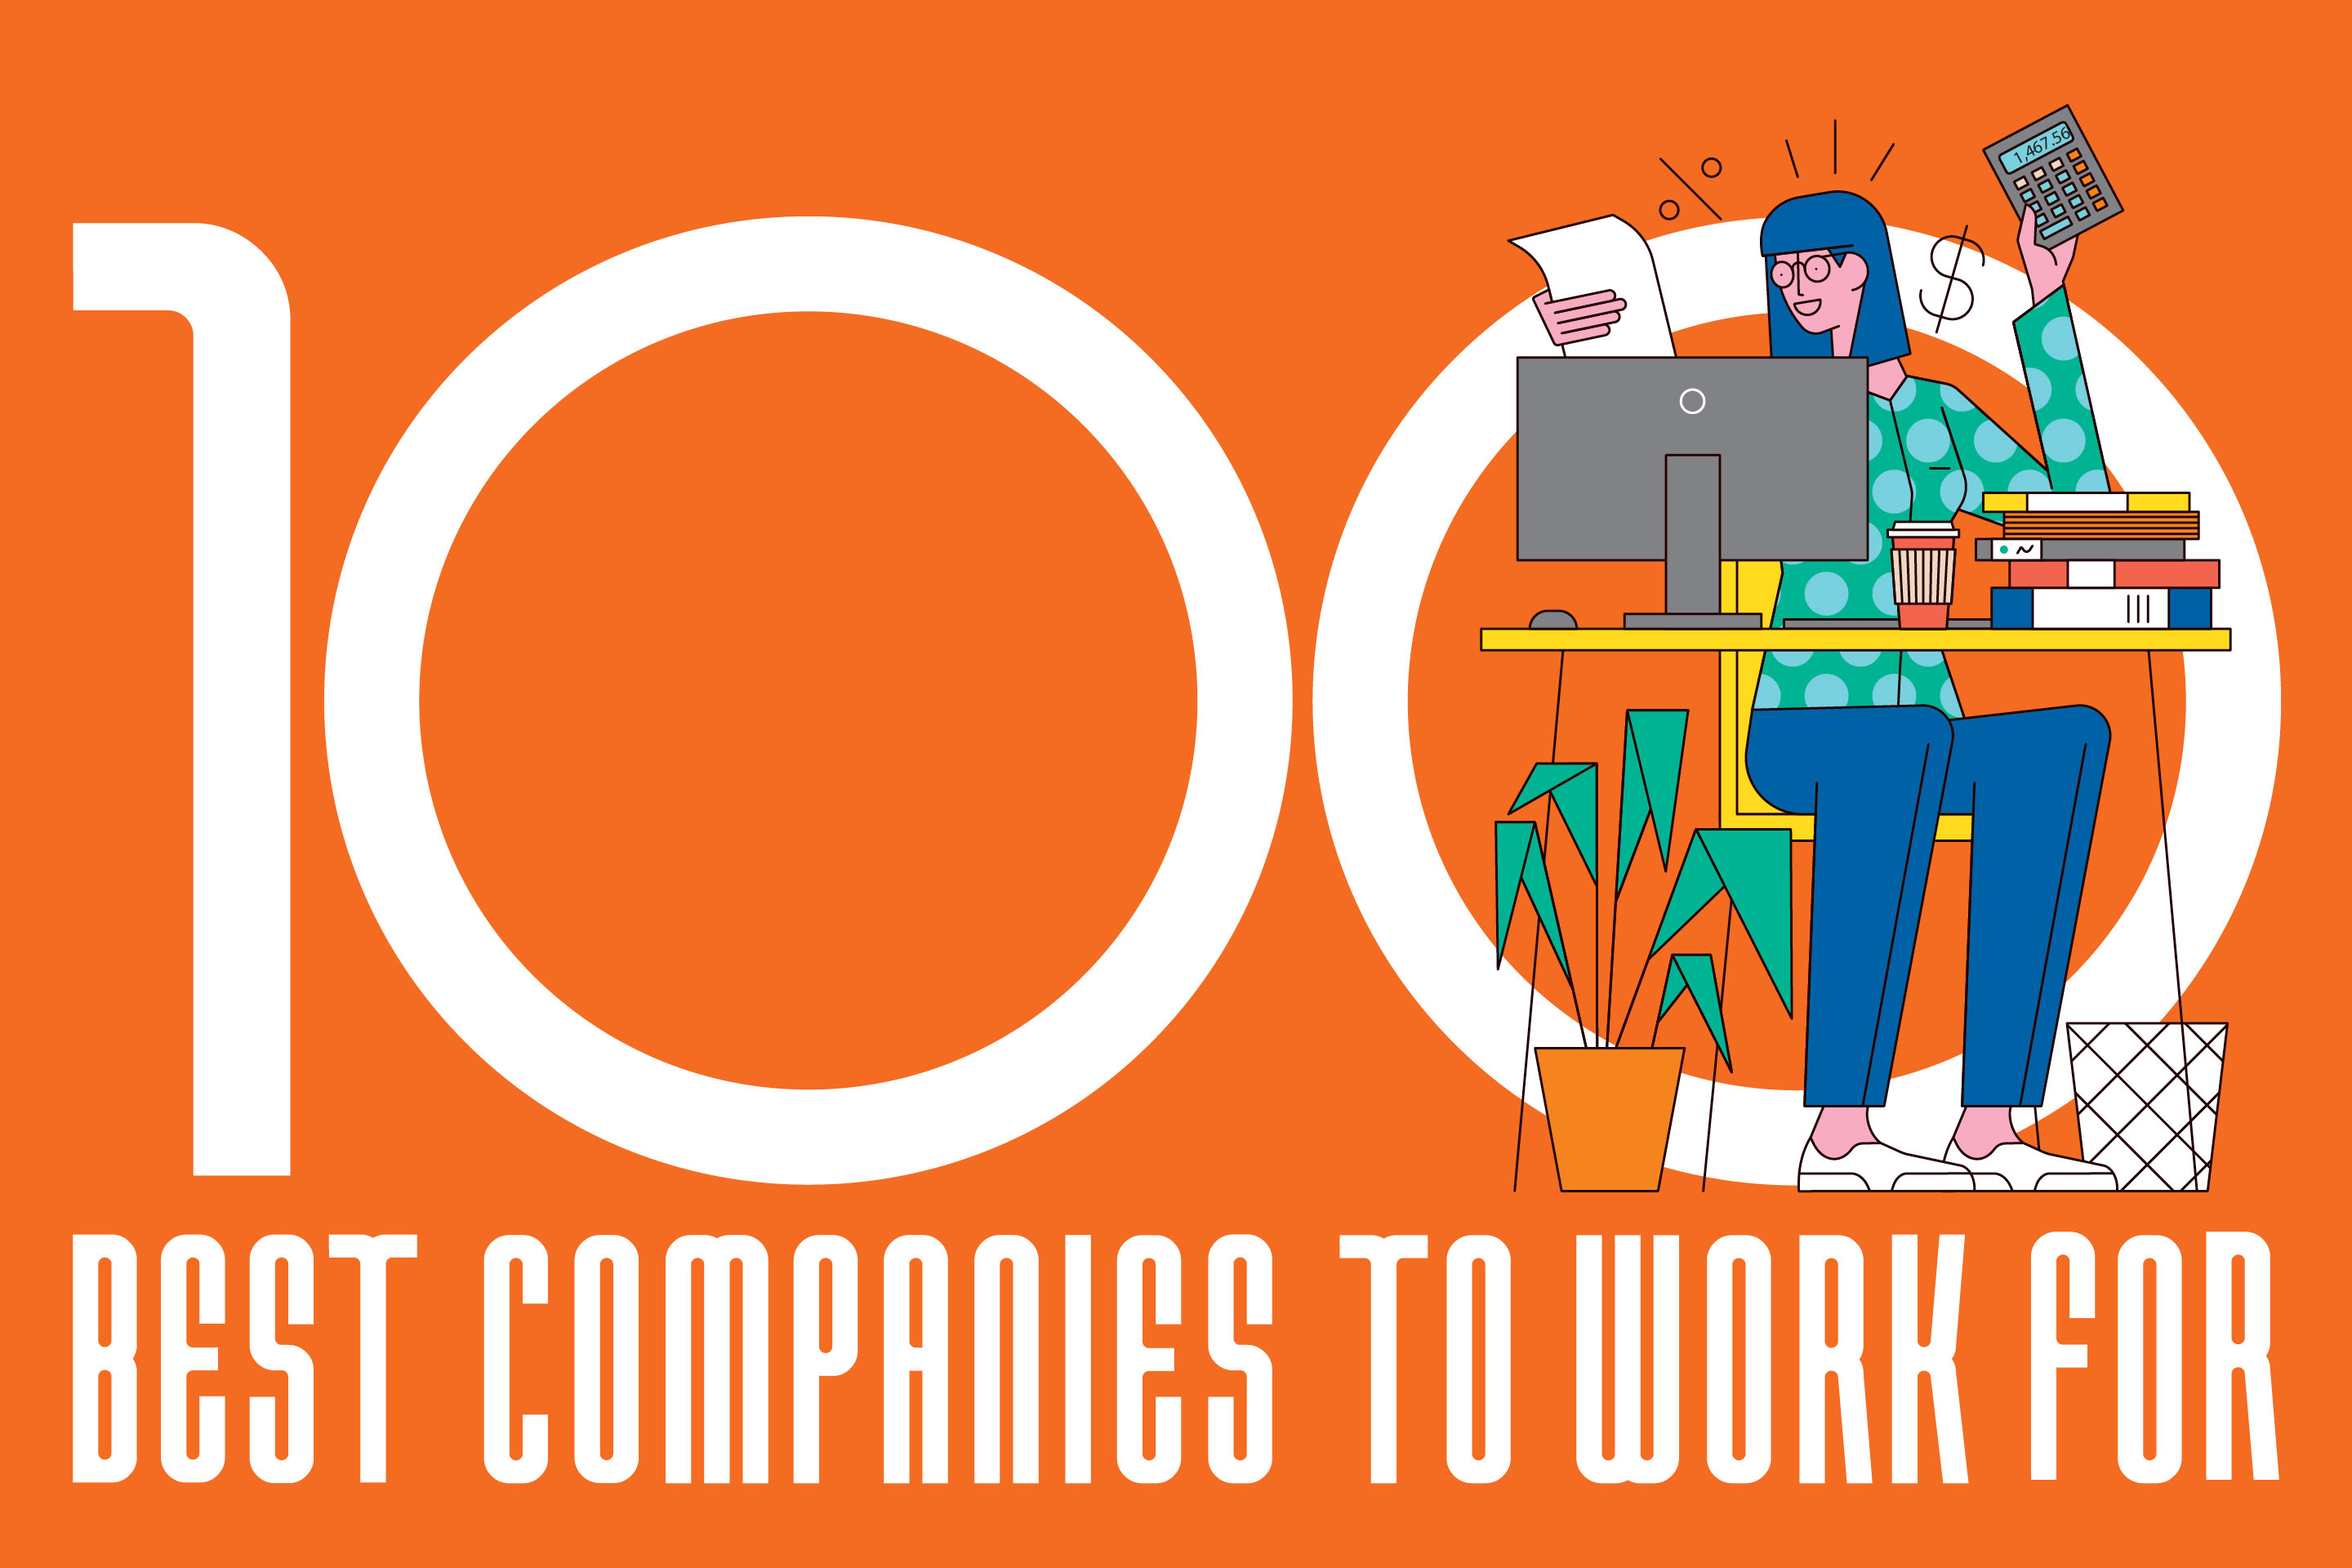 100 best companies to work for 2019 logo